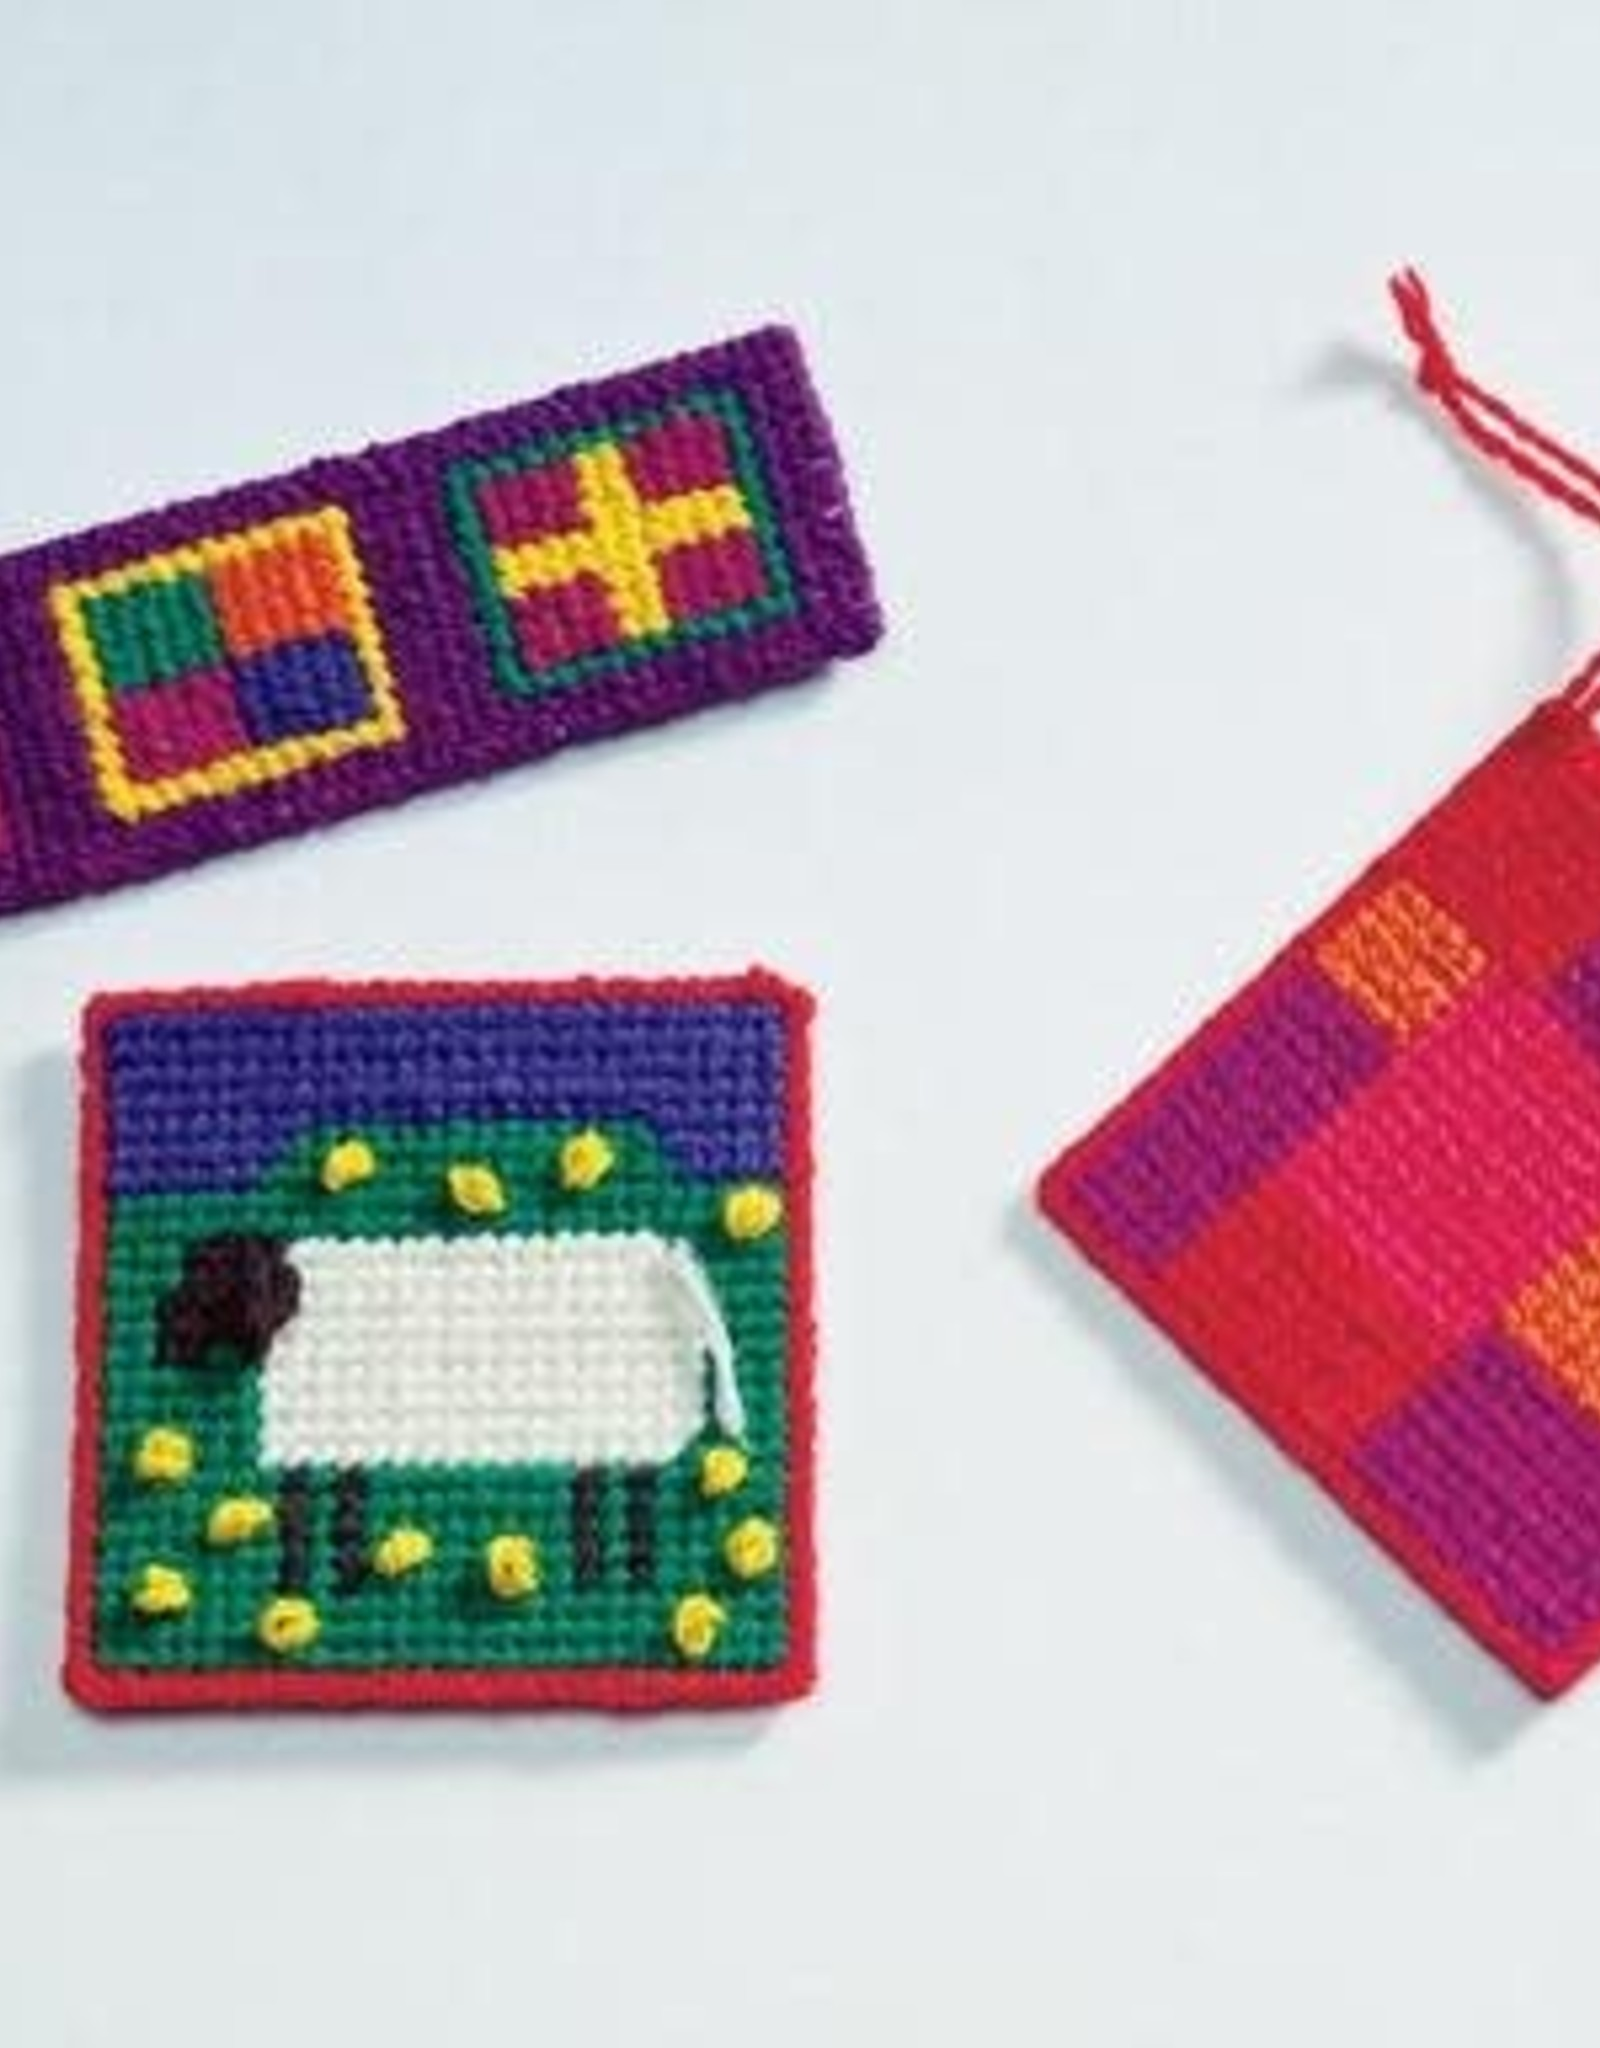 Harrisville Designs Needlepoint Kit for Kids